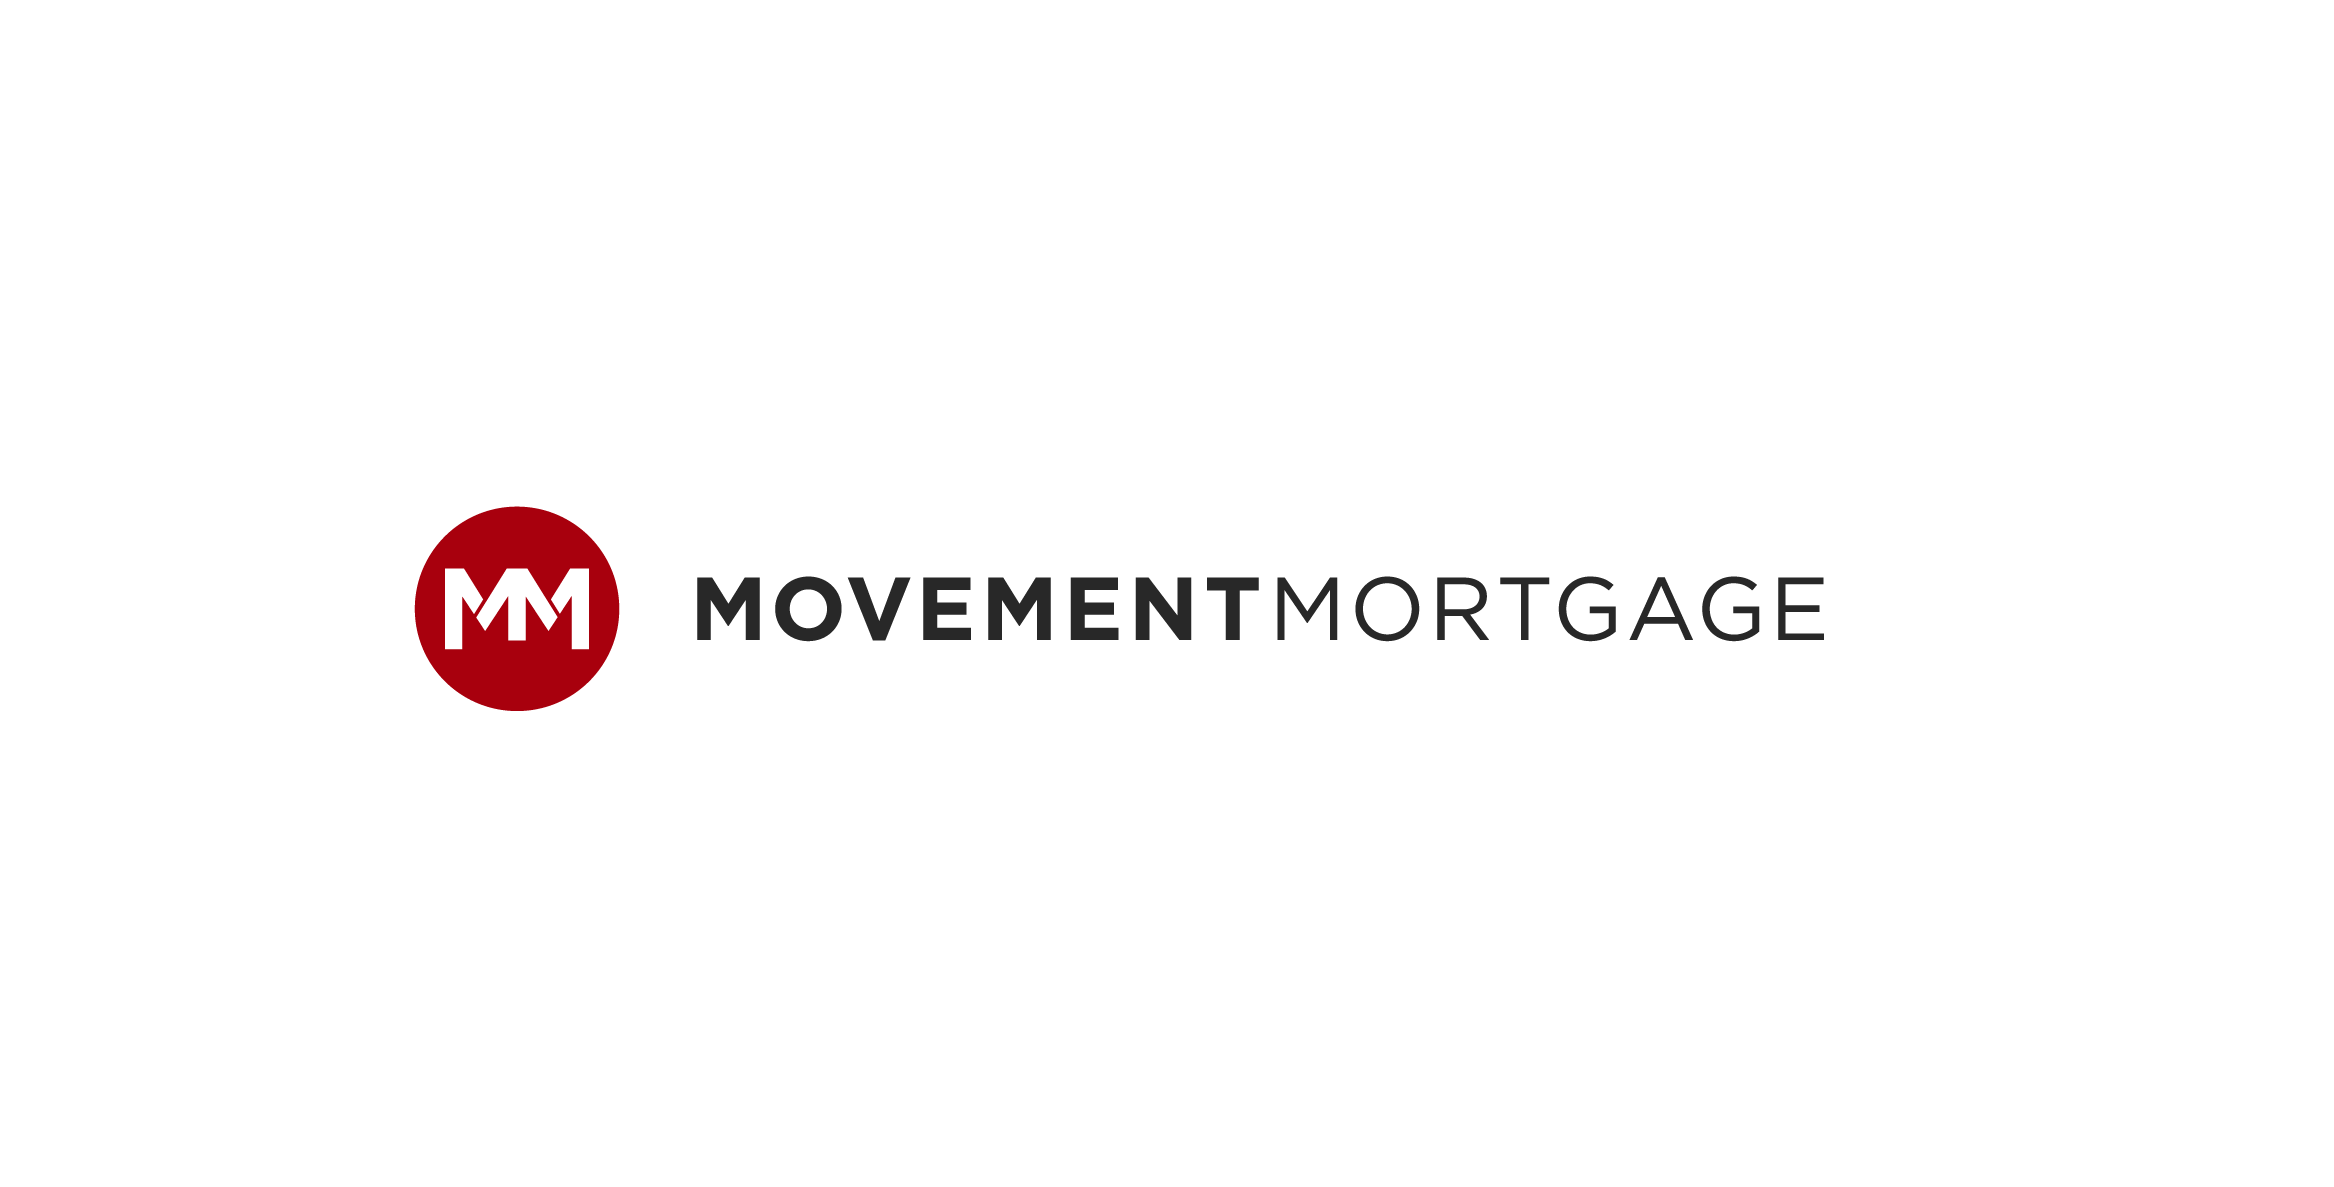 How Do I Become A Realtor Movement Mortgage Meet The Senior Loan Officer Laurence